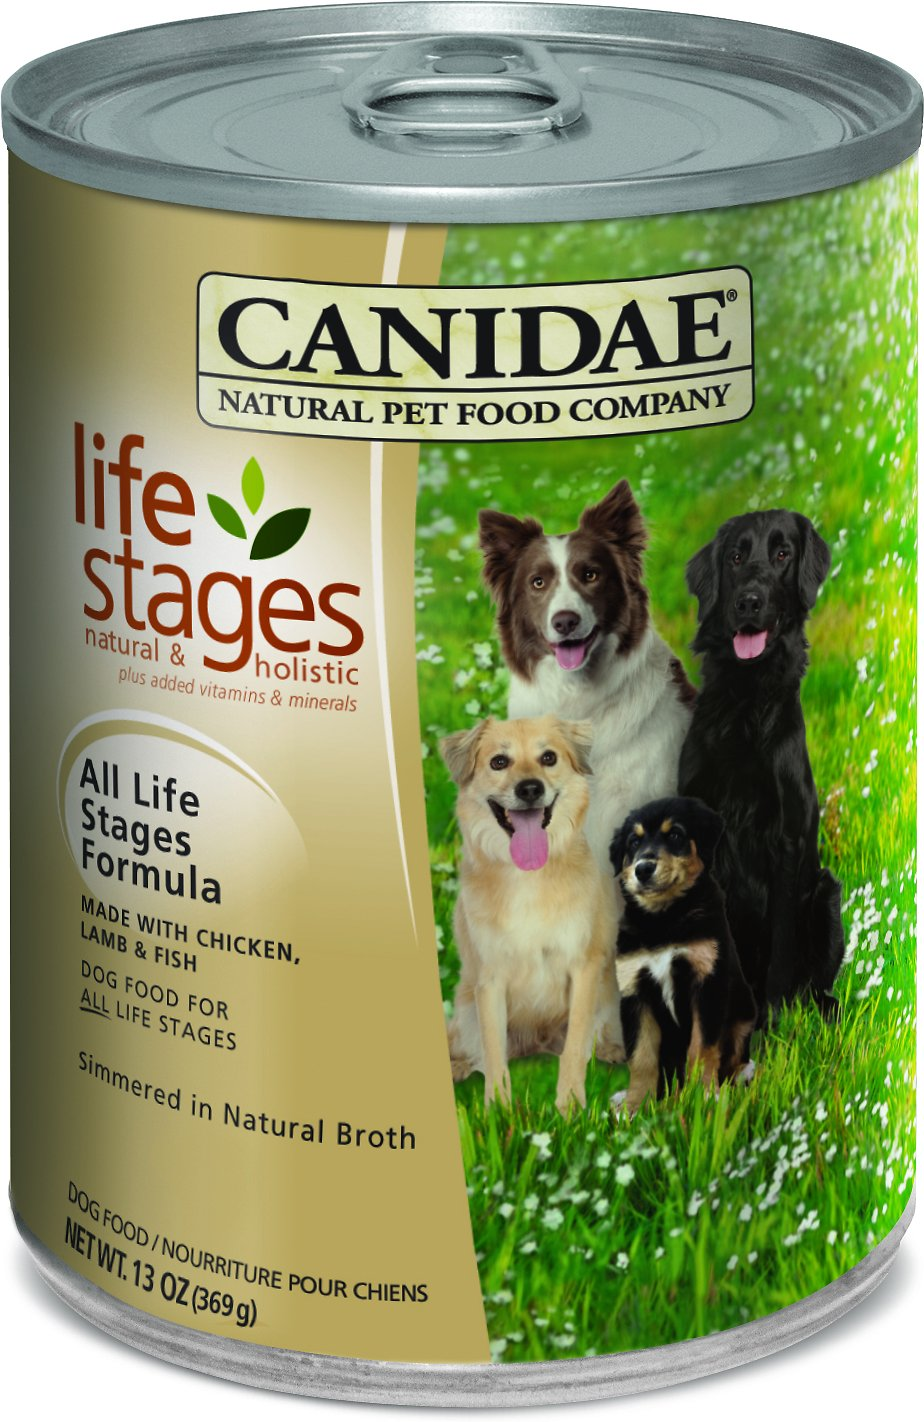 CANIDAE Life Stages All Life Stages Formula Canned Dog Food, 13-oz